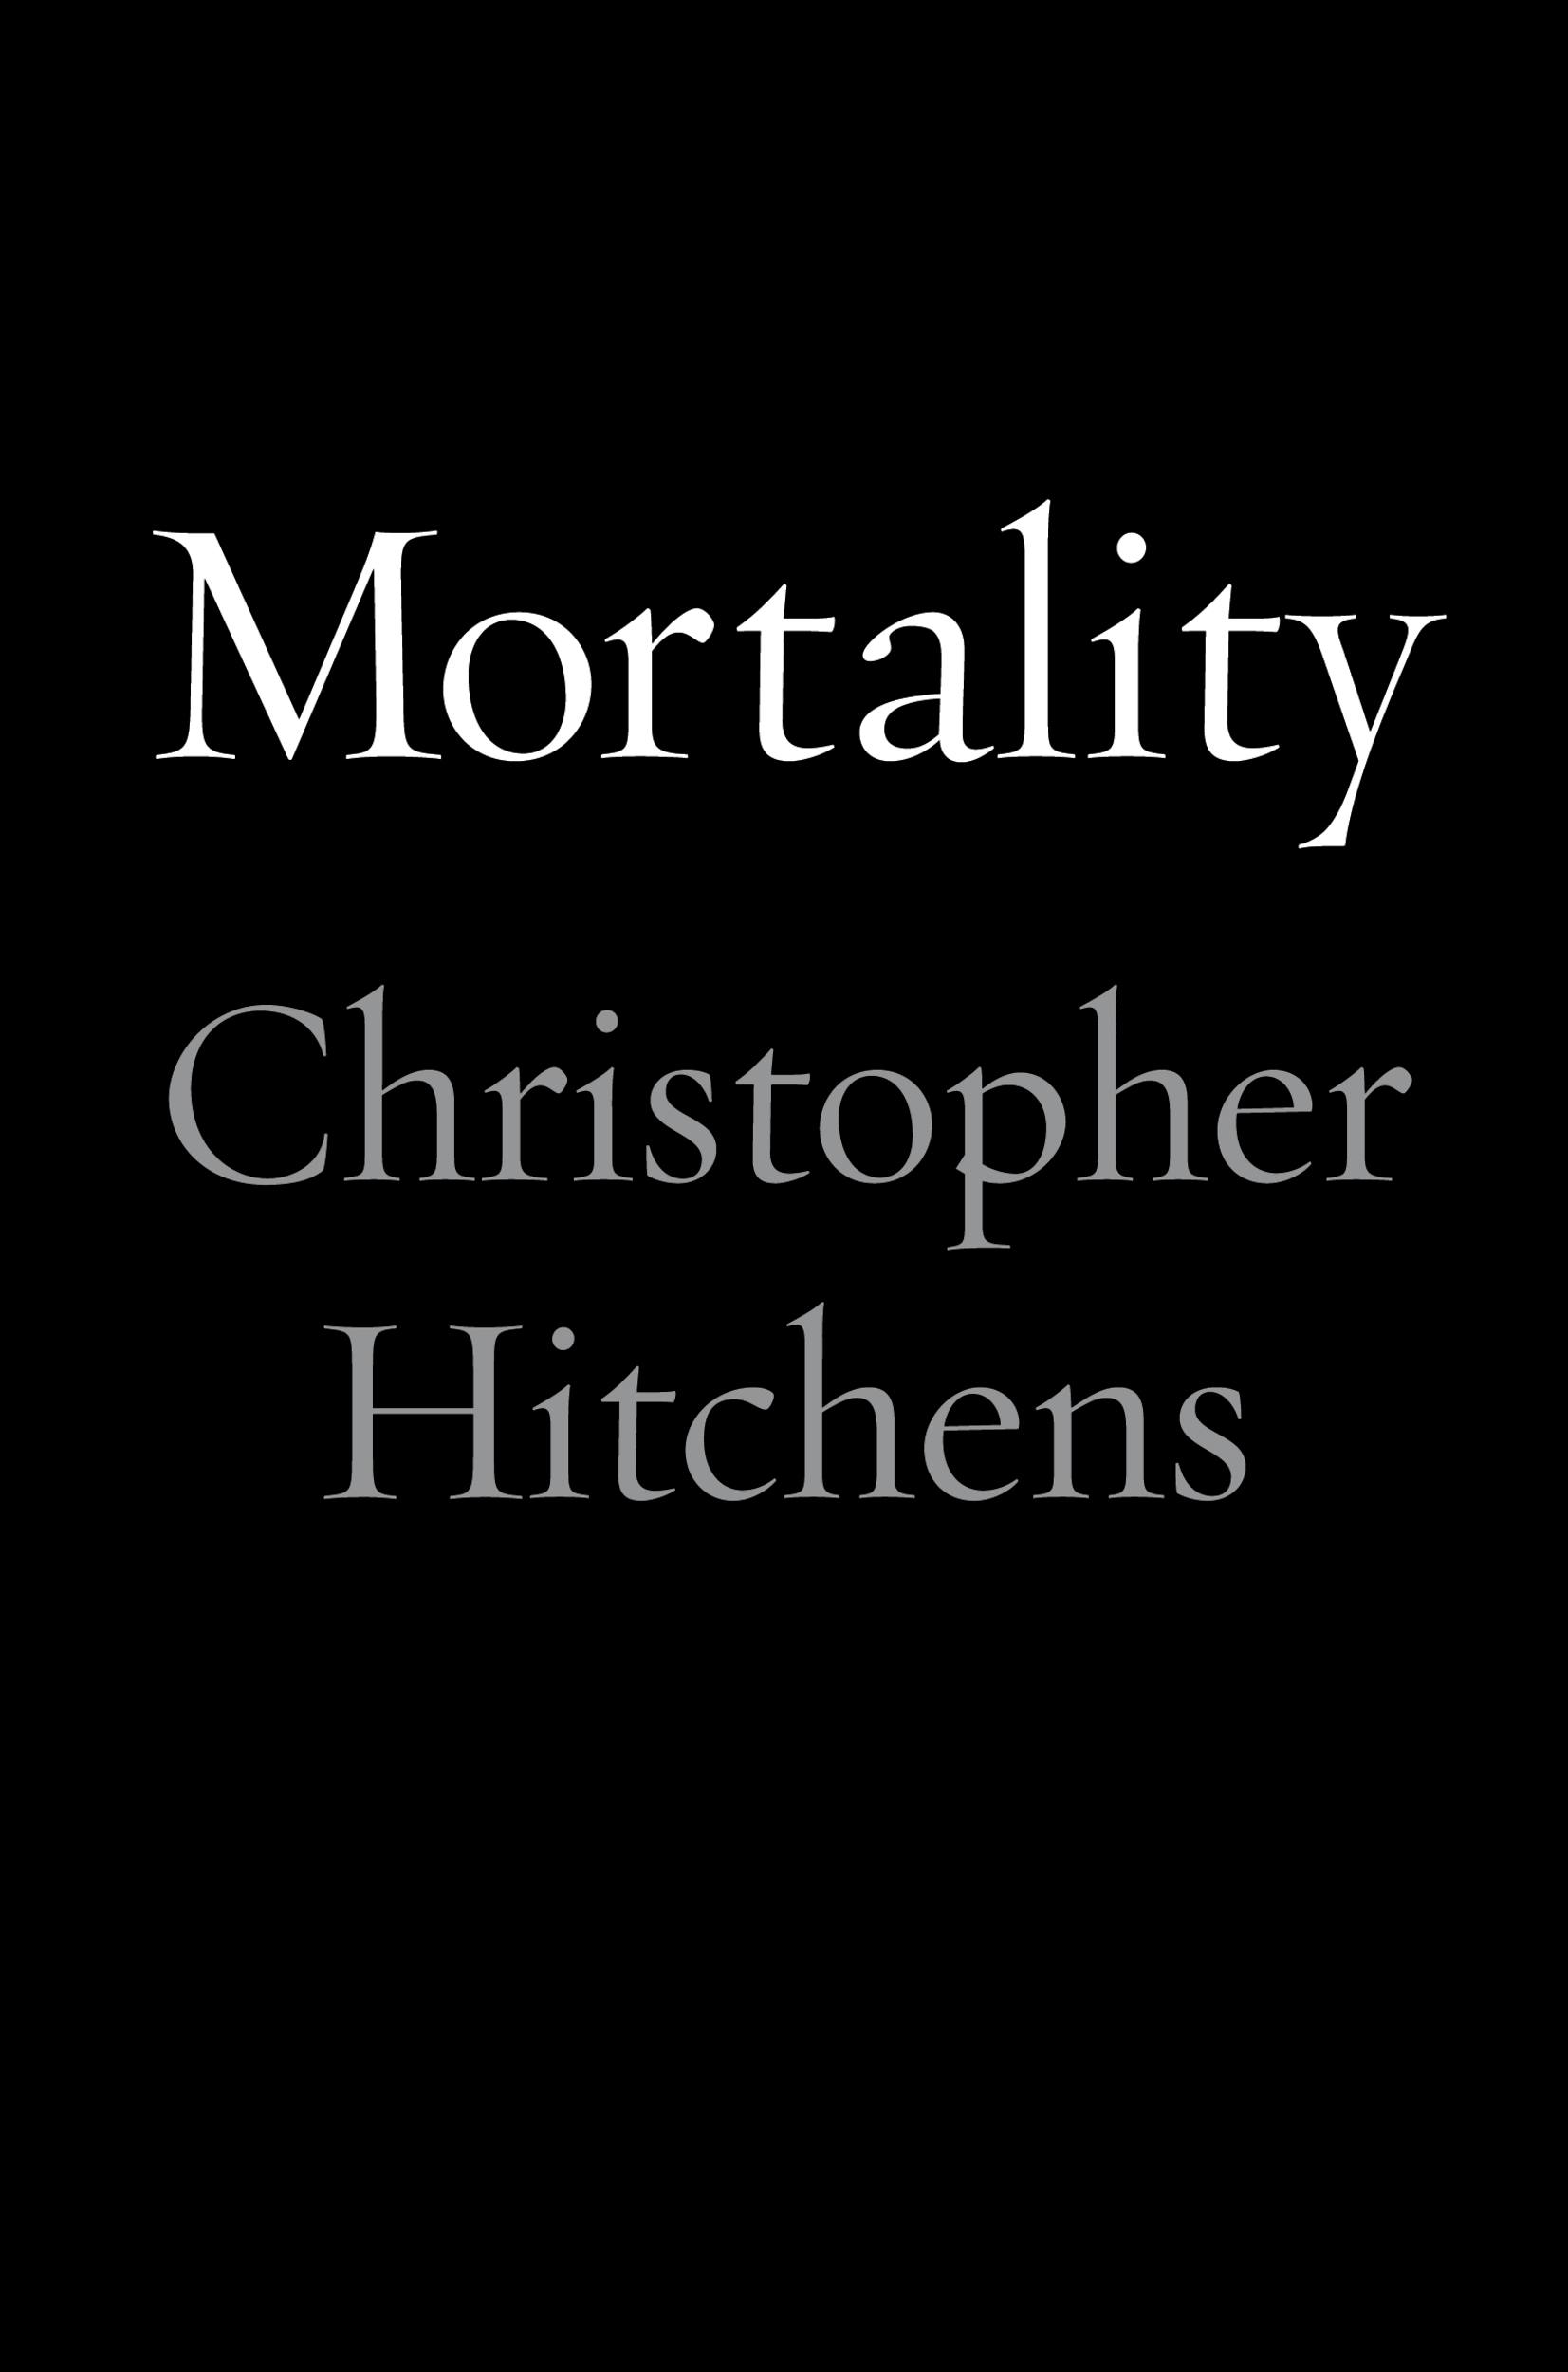 Mortality By: Christopher Hitchens